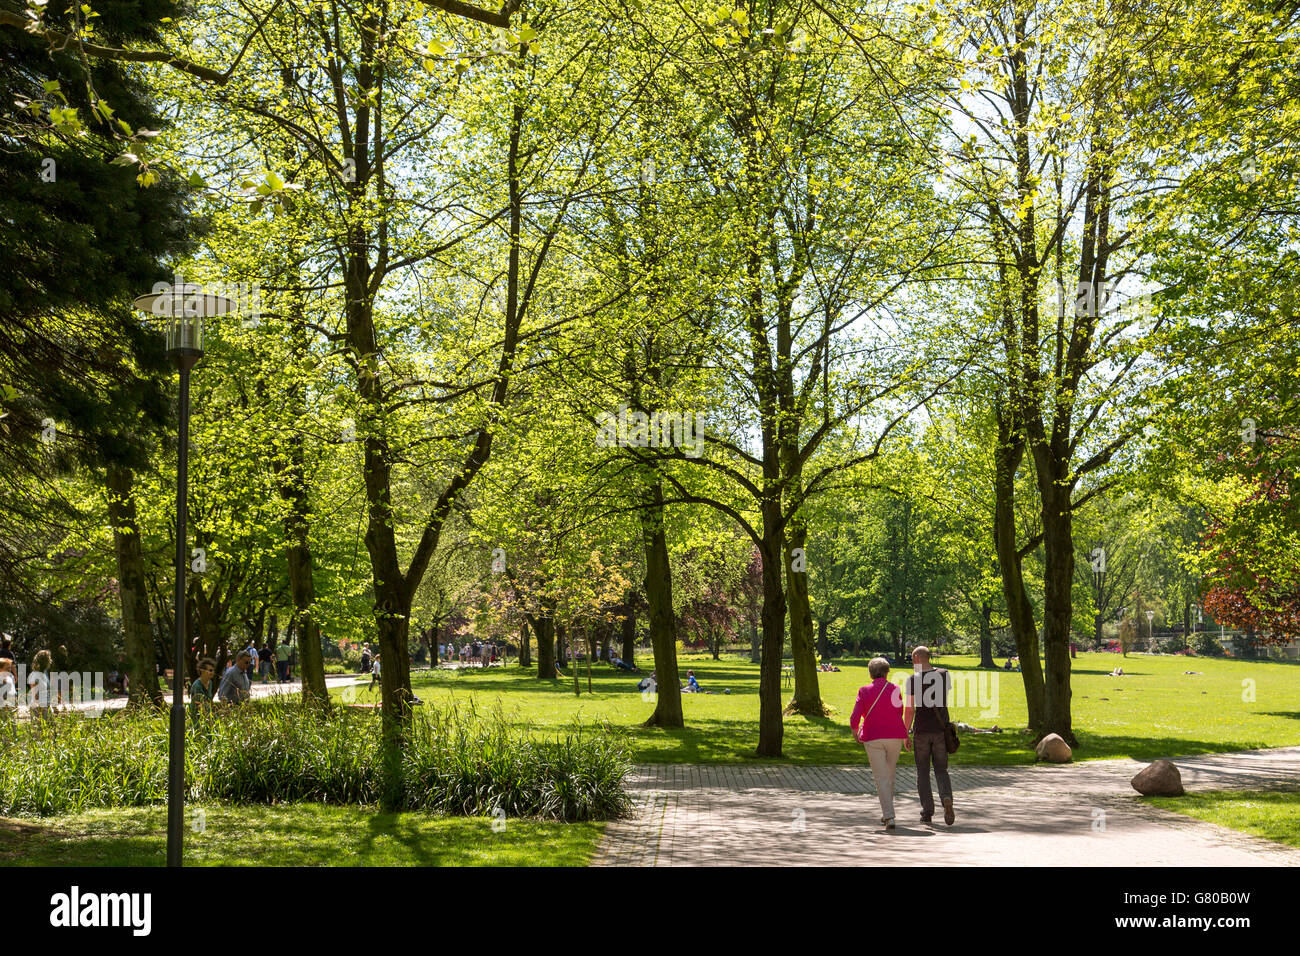 The Grugapark in Essen, Germany, a municipal park in the city center, with many plants, gardens, animals and leisure - Stock Image